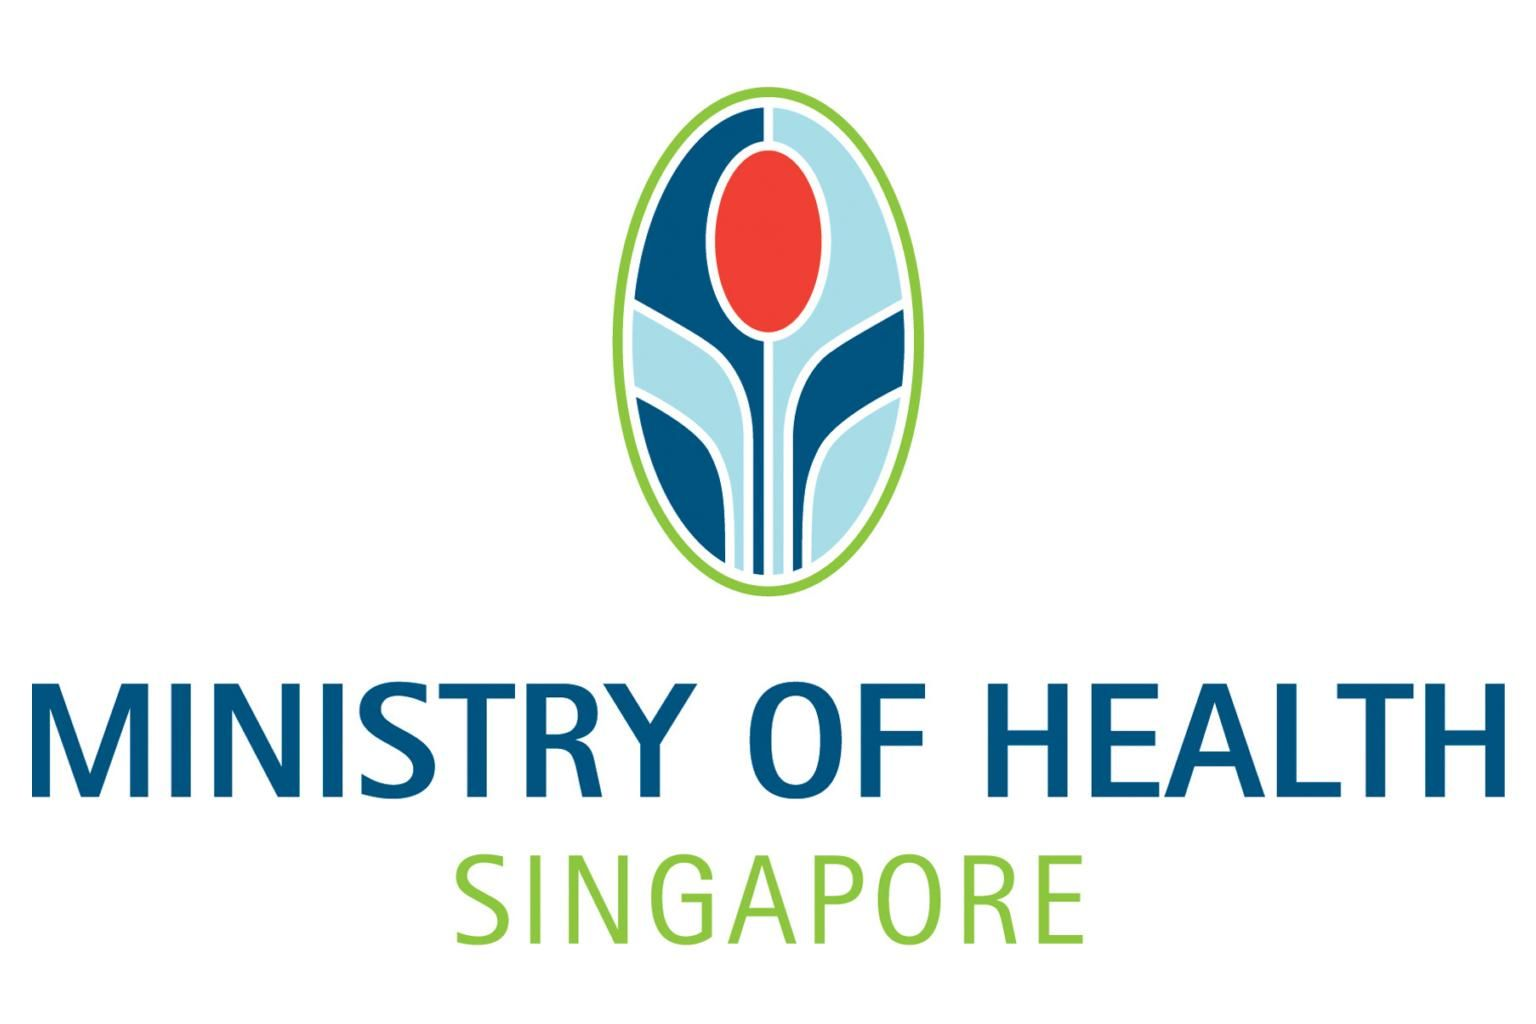 Ministry of Health steps up disease prevention with healthy eating  initiatives, Government & Economy - THE BUSINESS TIMES